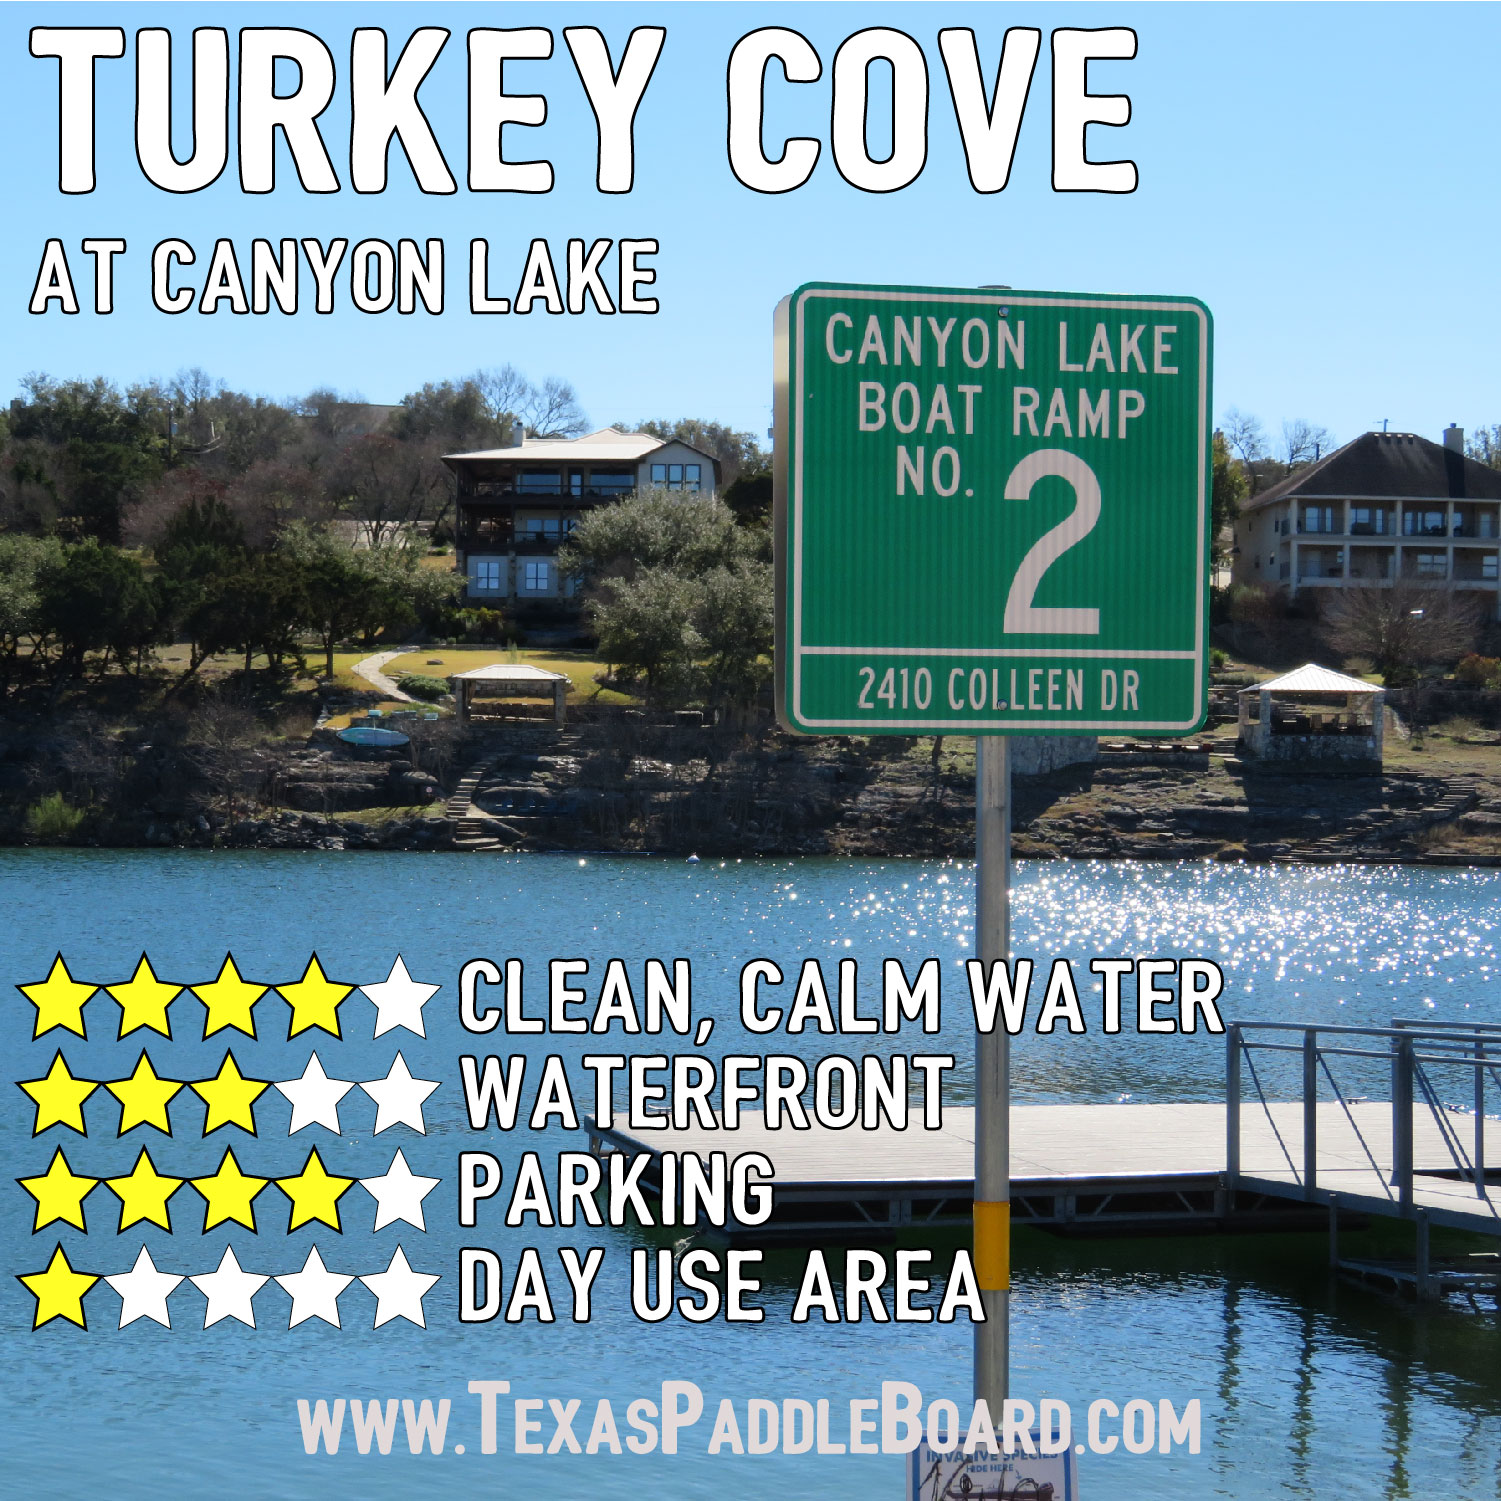 canyon lake turkey cove review cover square-02-02